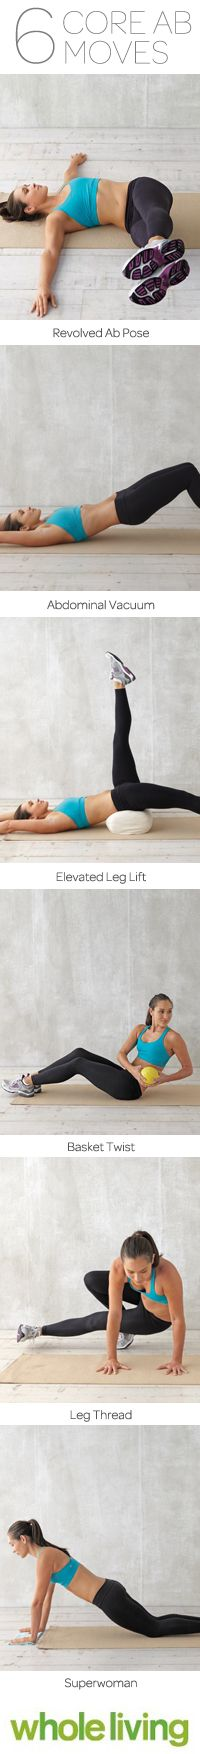 Crunches are not enough! Try these 6 moves to keep you looking & feeling beautifully balanced, Wholeliving.com